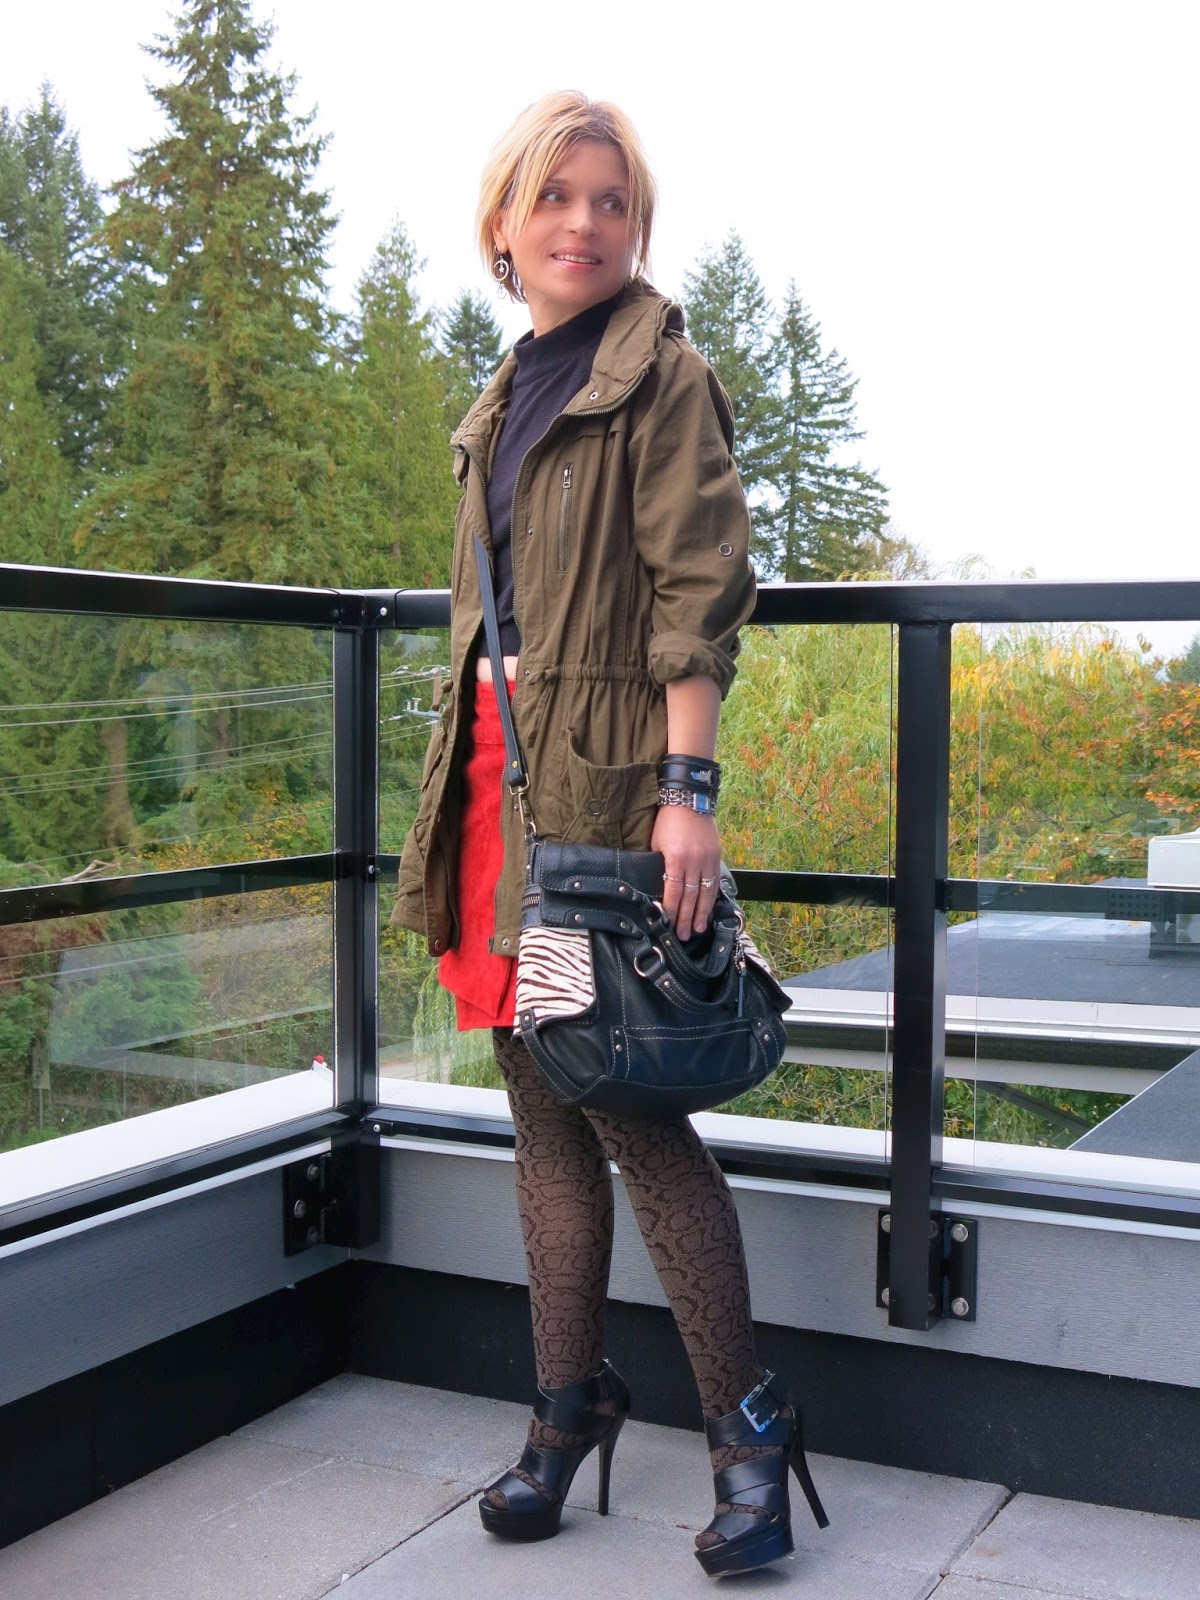 styling a red envelope skirt with a cropped sweater, patterned tights, military-inspired jacket, and Michael Michael Kors heels